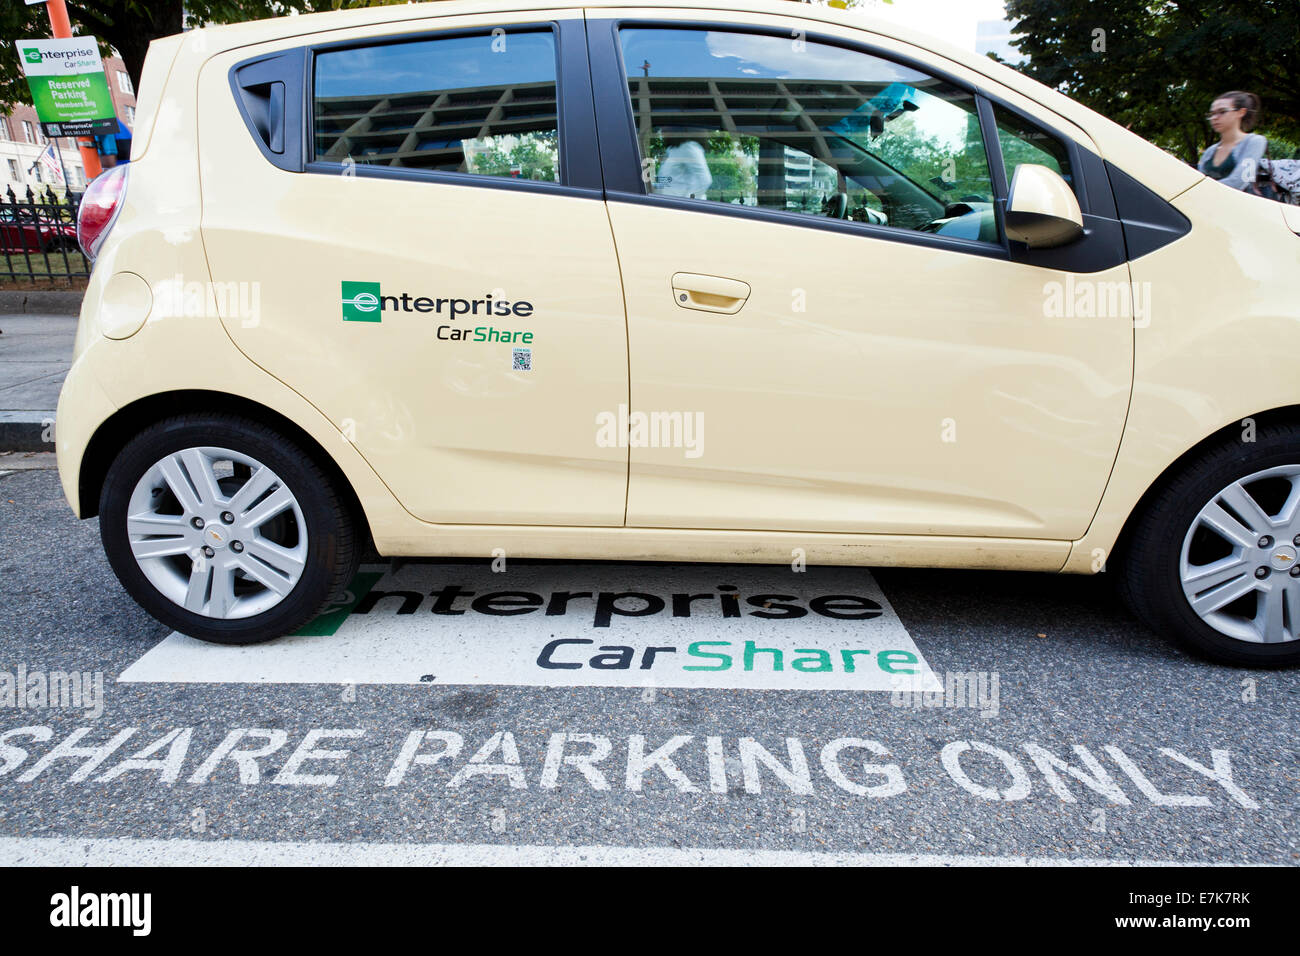 Enterprise Car Share Number >> Car Share Stock Photos Car Share Stock Images Page 2 Alamy